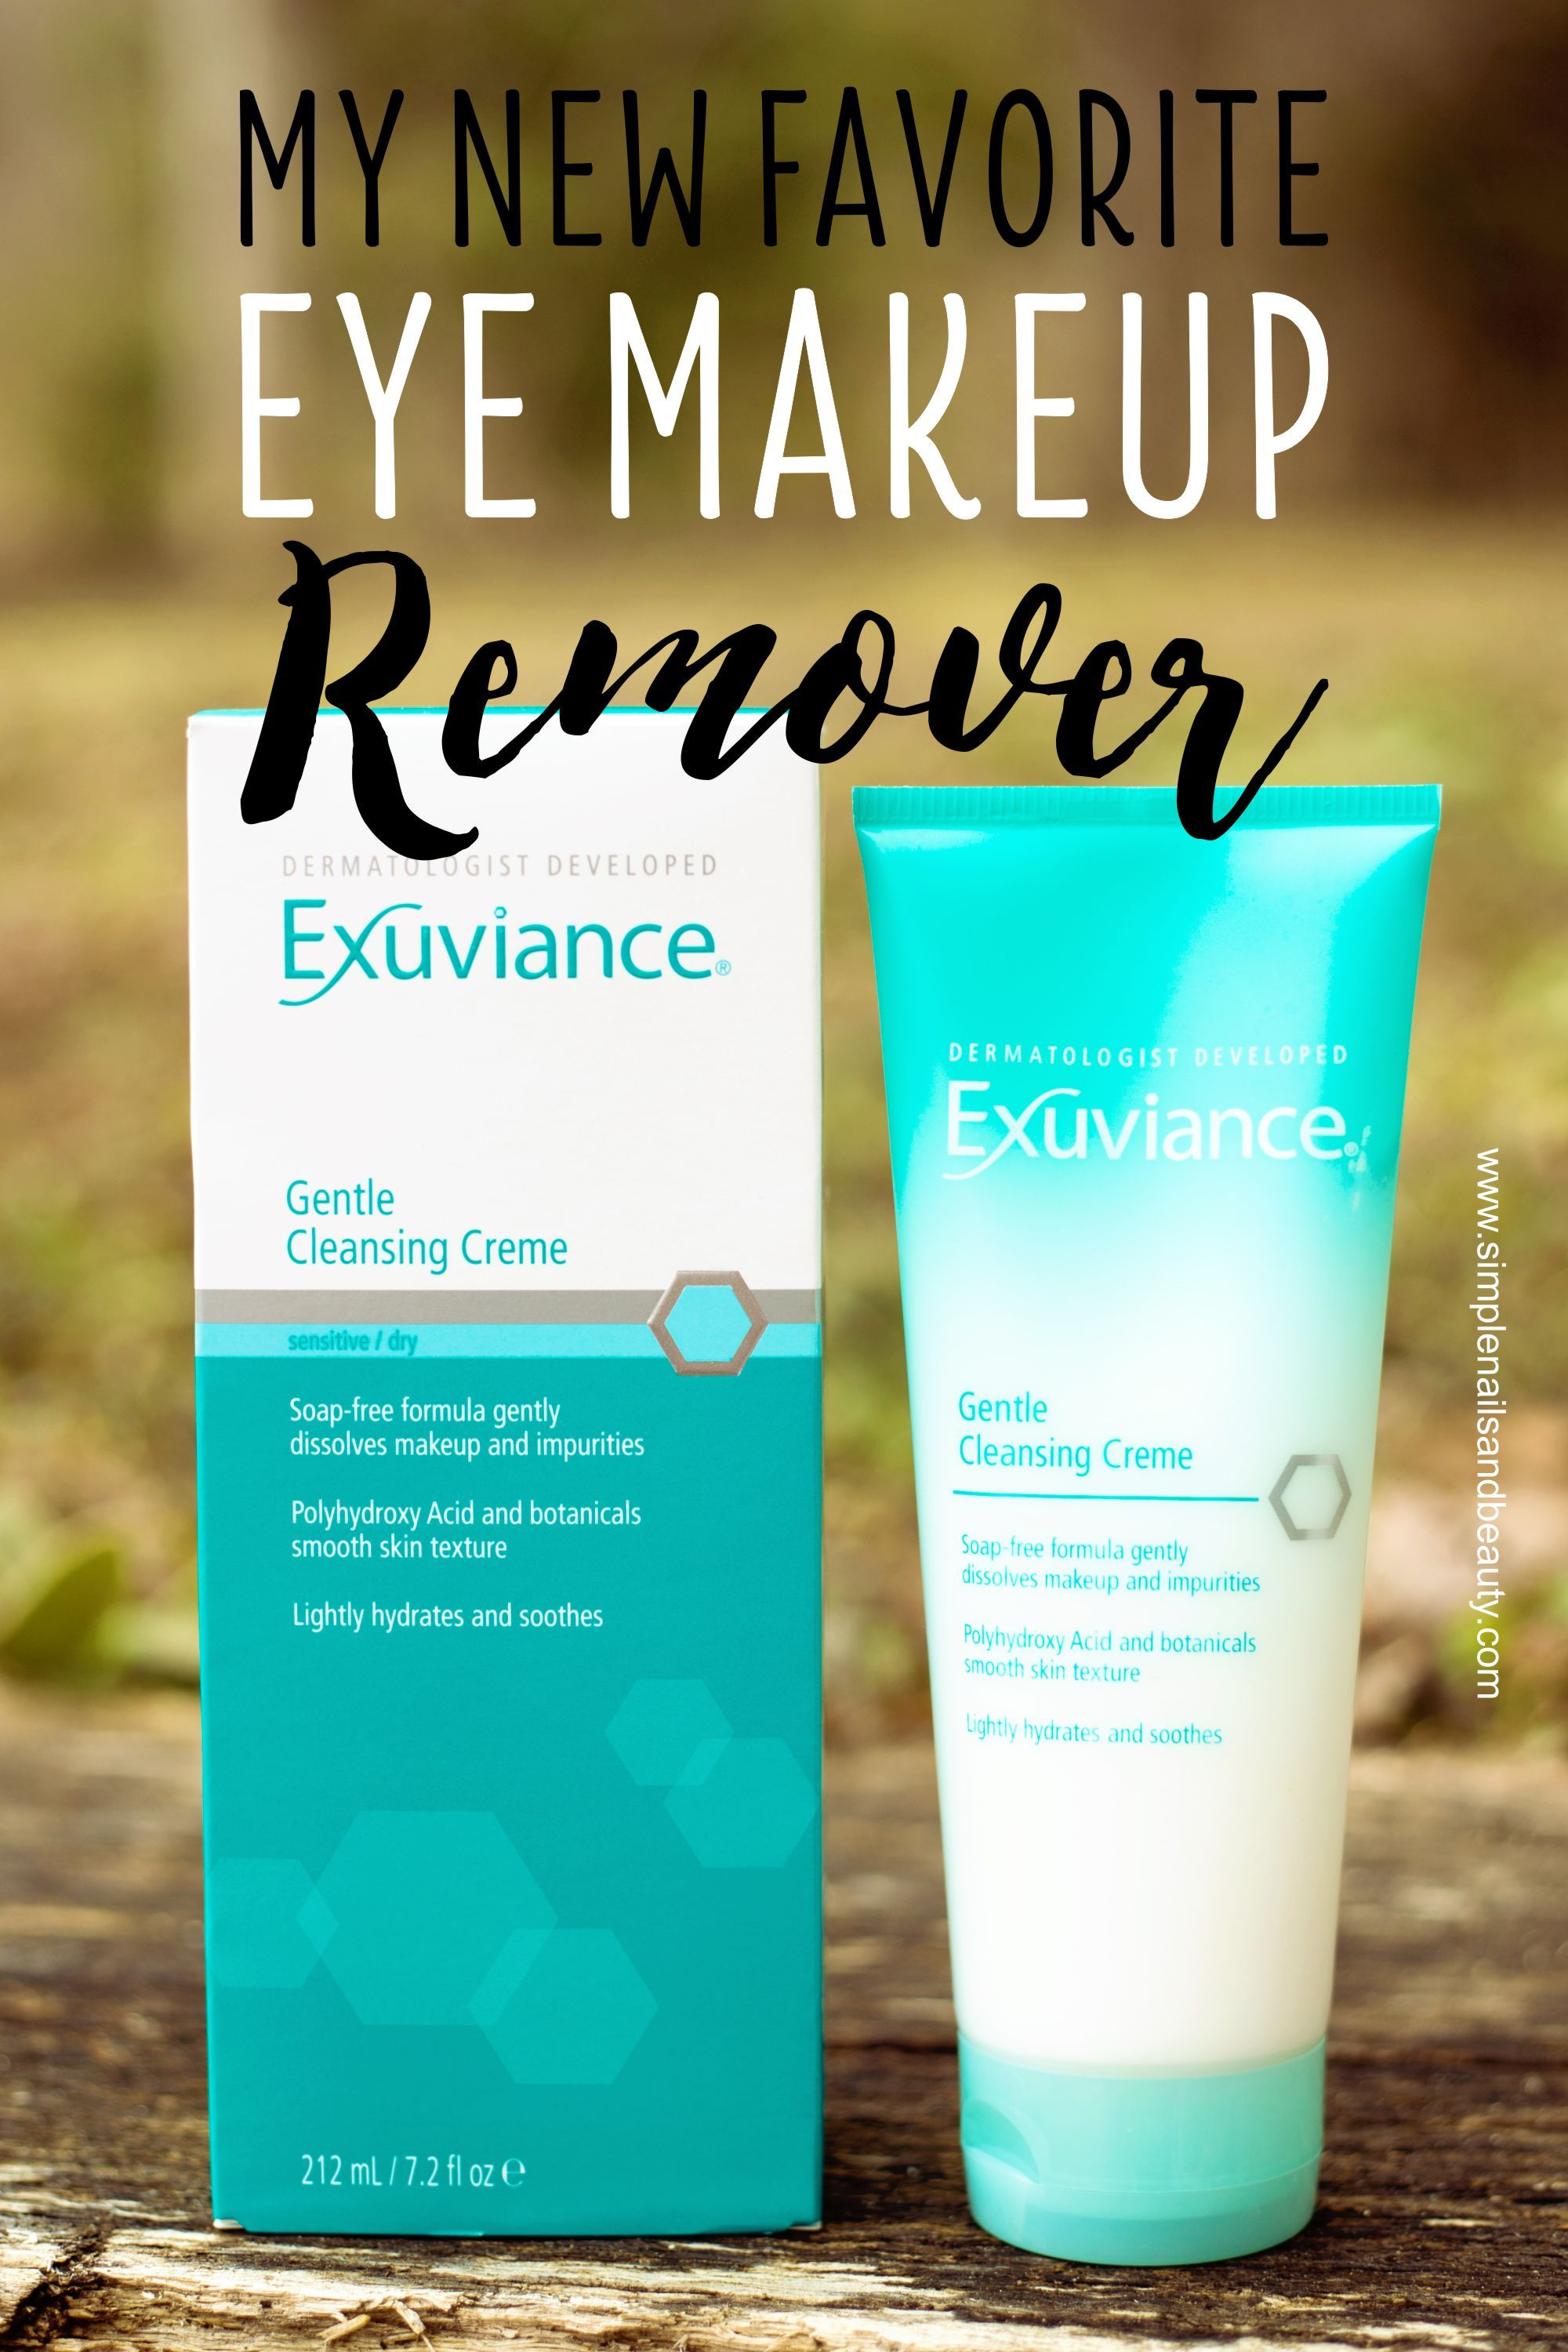 Exuviance Gentle Cleansing Creme My Ultimate Eye Makeup Remover Cleansing Creme Gentle Cleanse Eye Makeup Remover